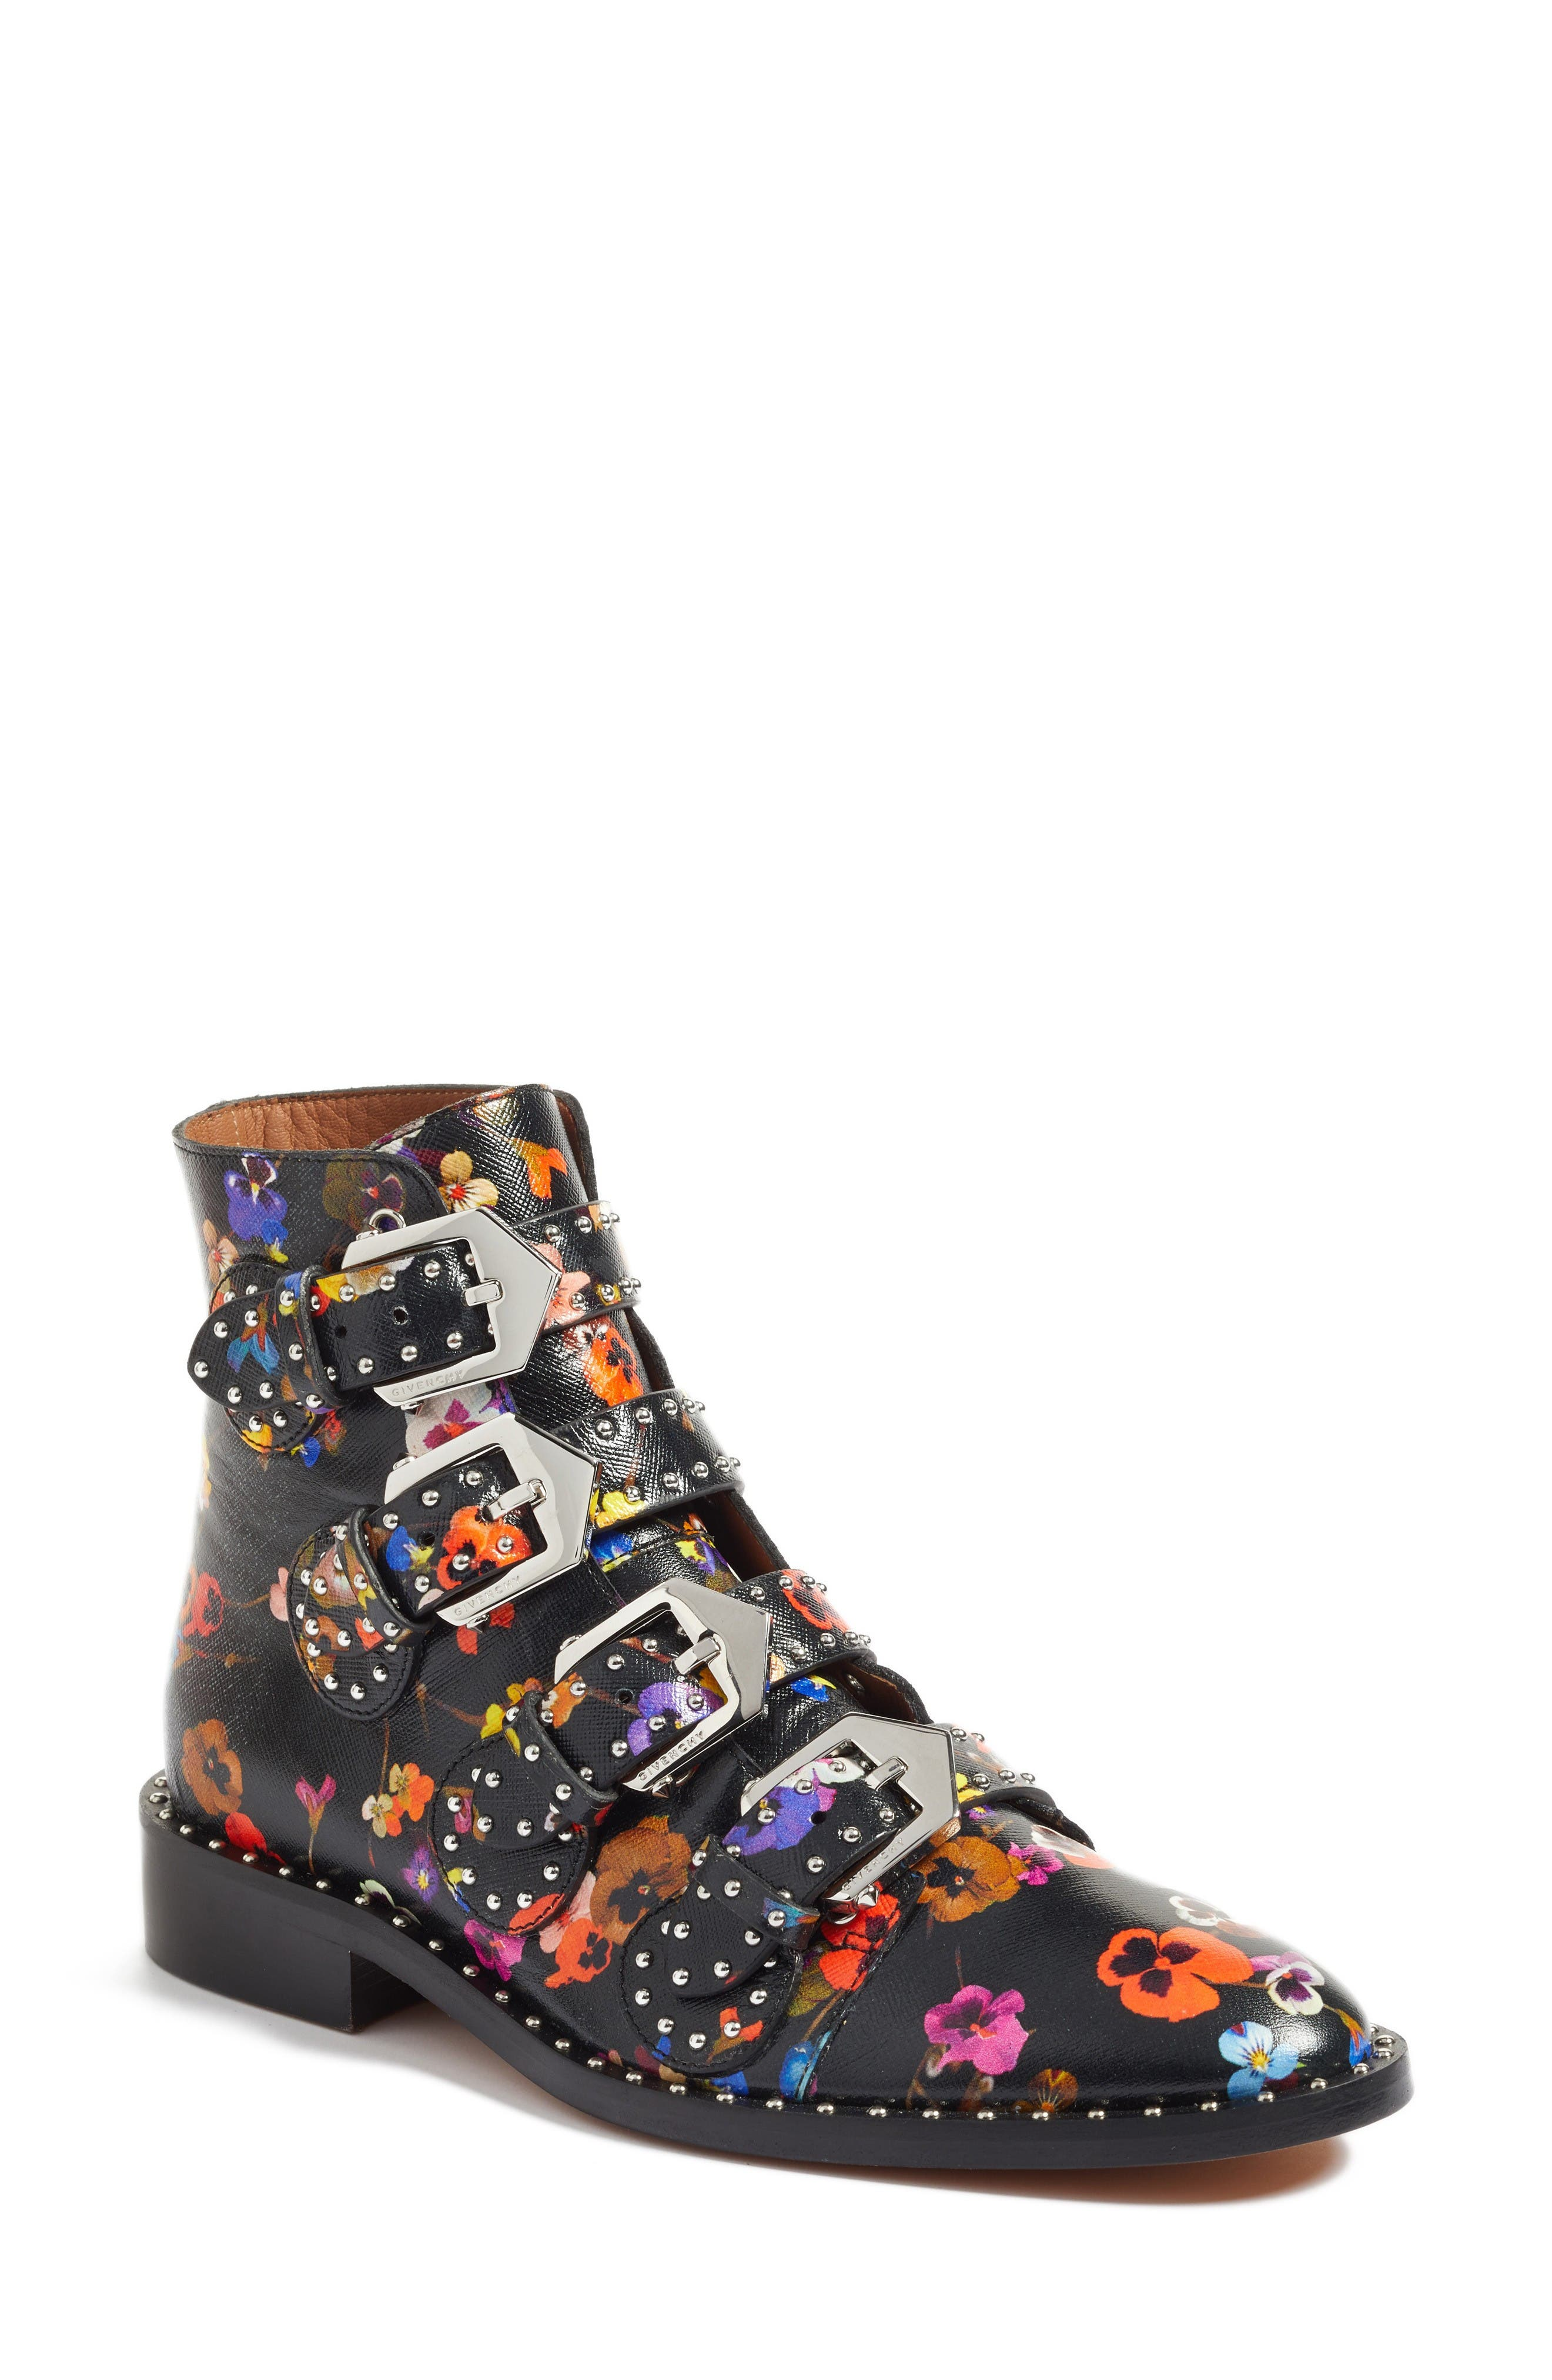 Alternate Image 1 Selected - Givenchy Prue Ankle Boot (Women)